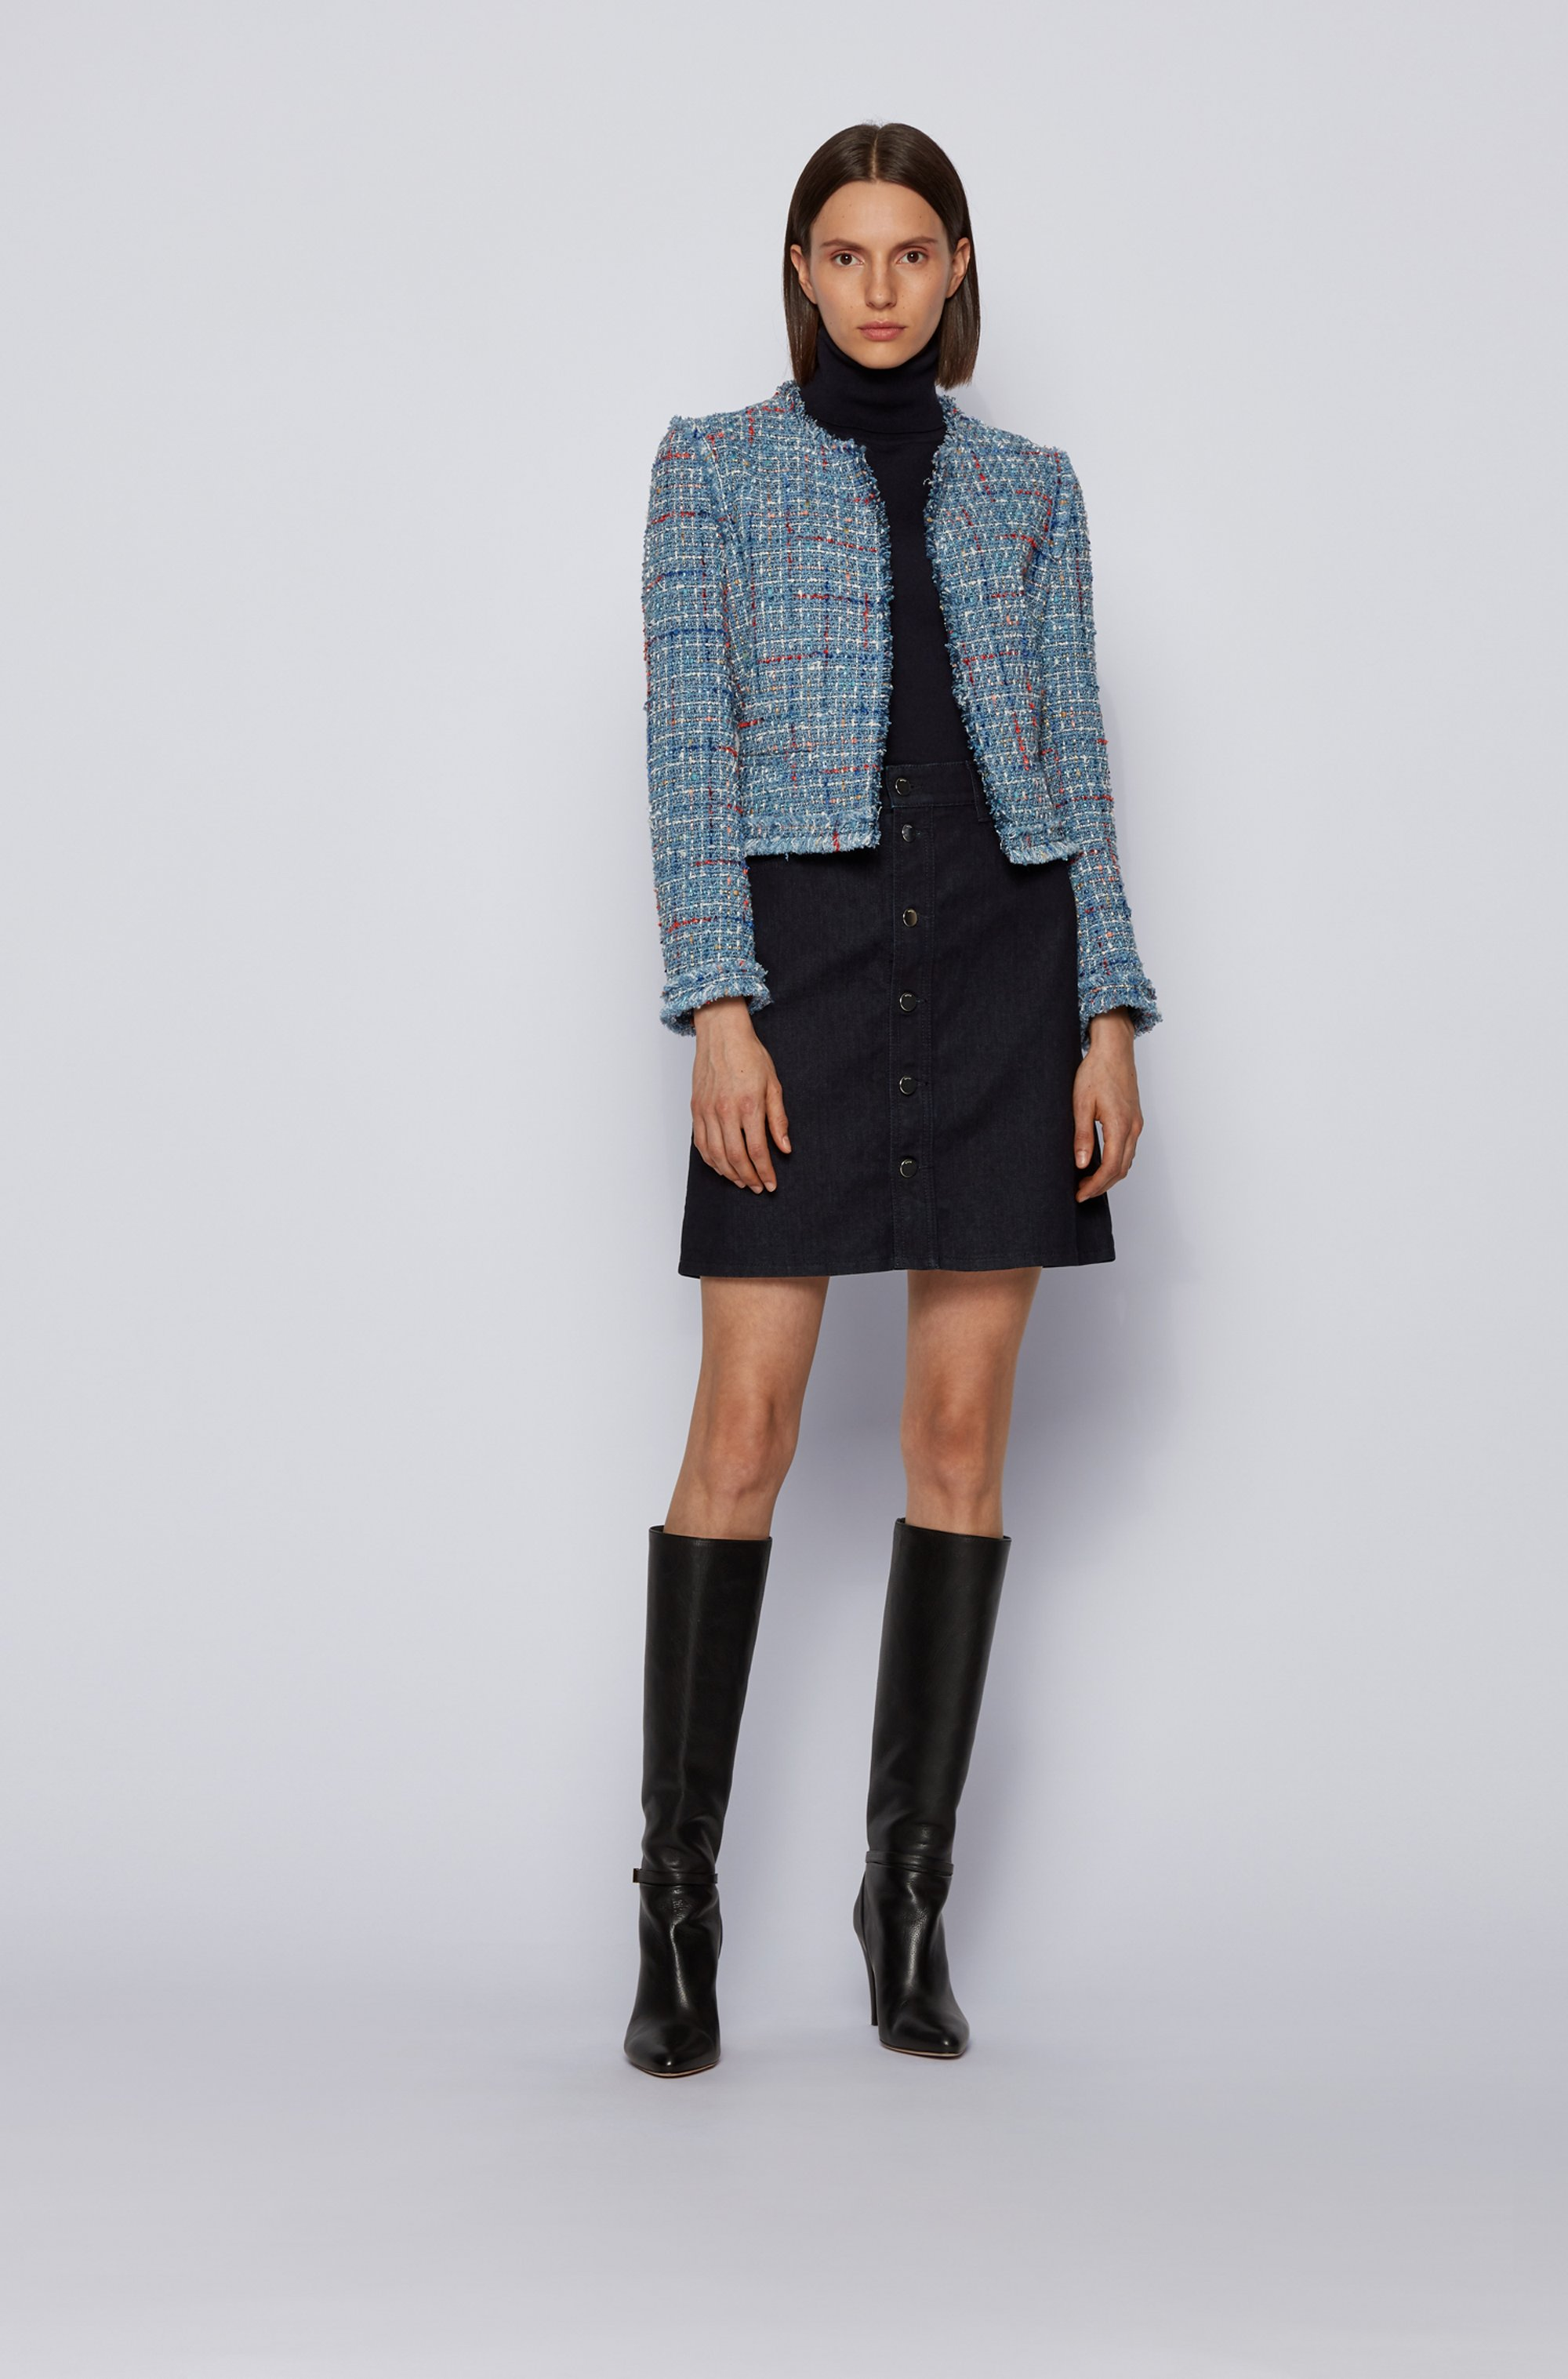 A-line skirt in comfort-stretch denim with buttoned front